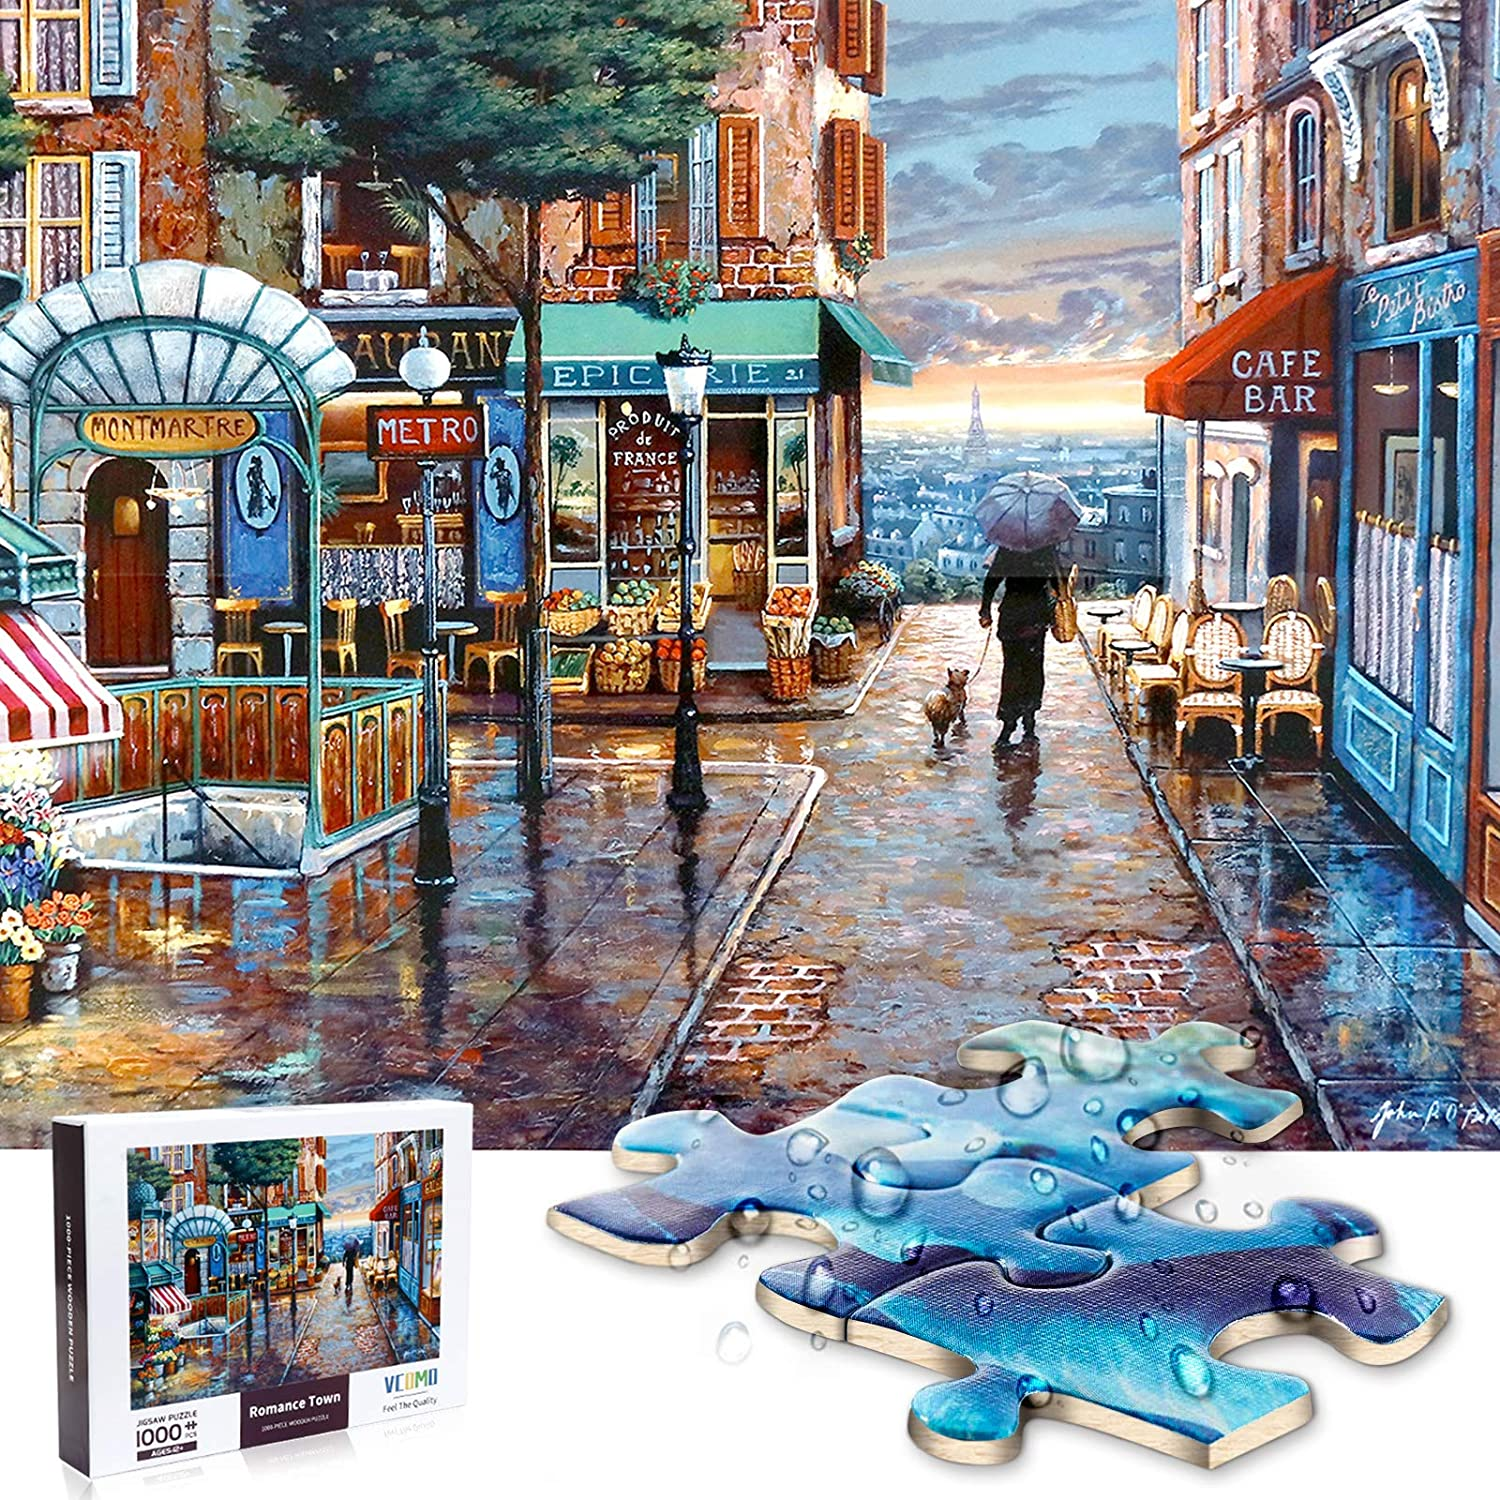 Jigsaw Puzzle Max 47% OFF 1000 Pieces for Resist Water Outlet SALE Wooden Adults